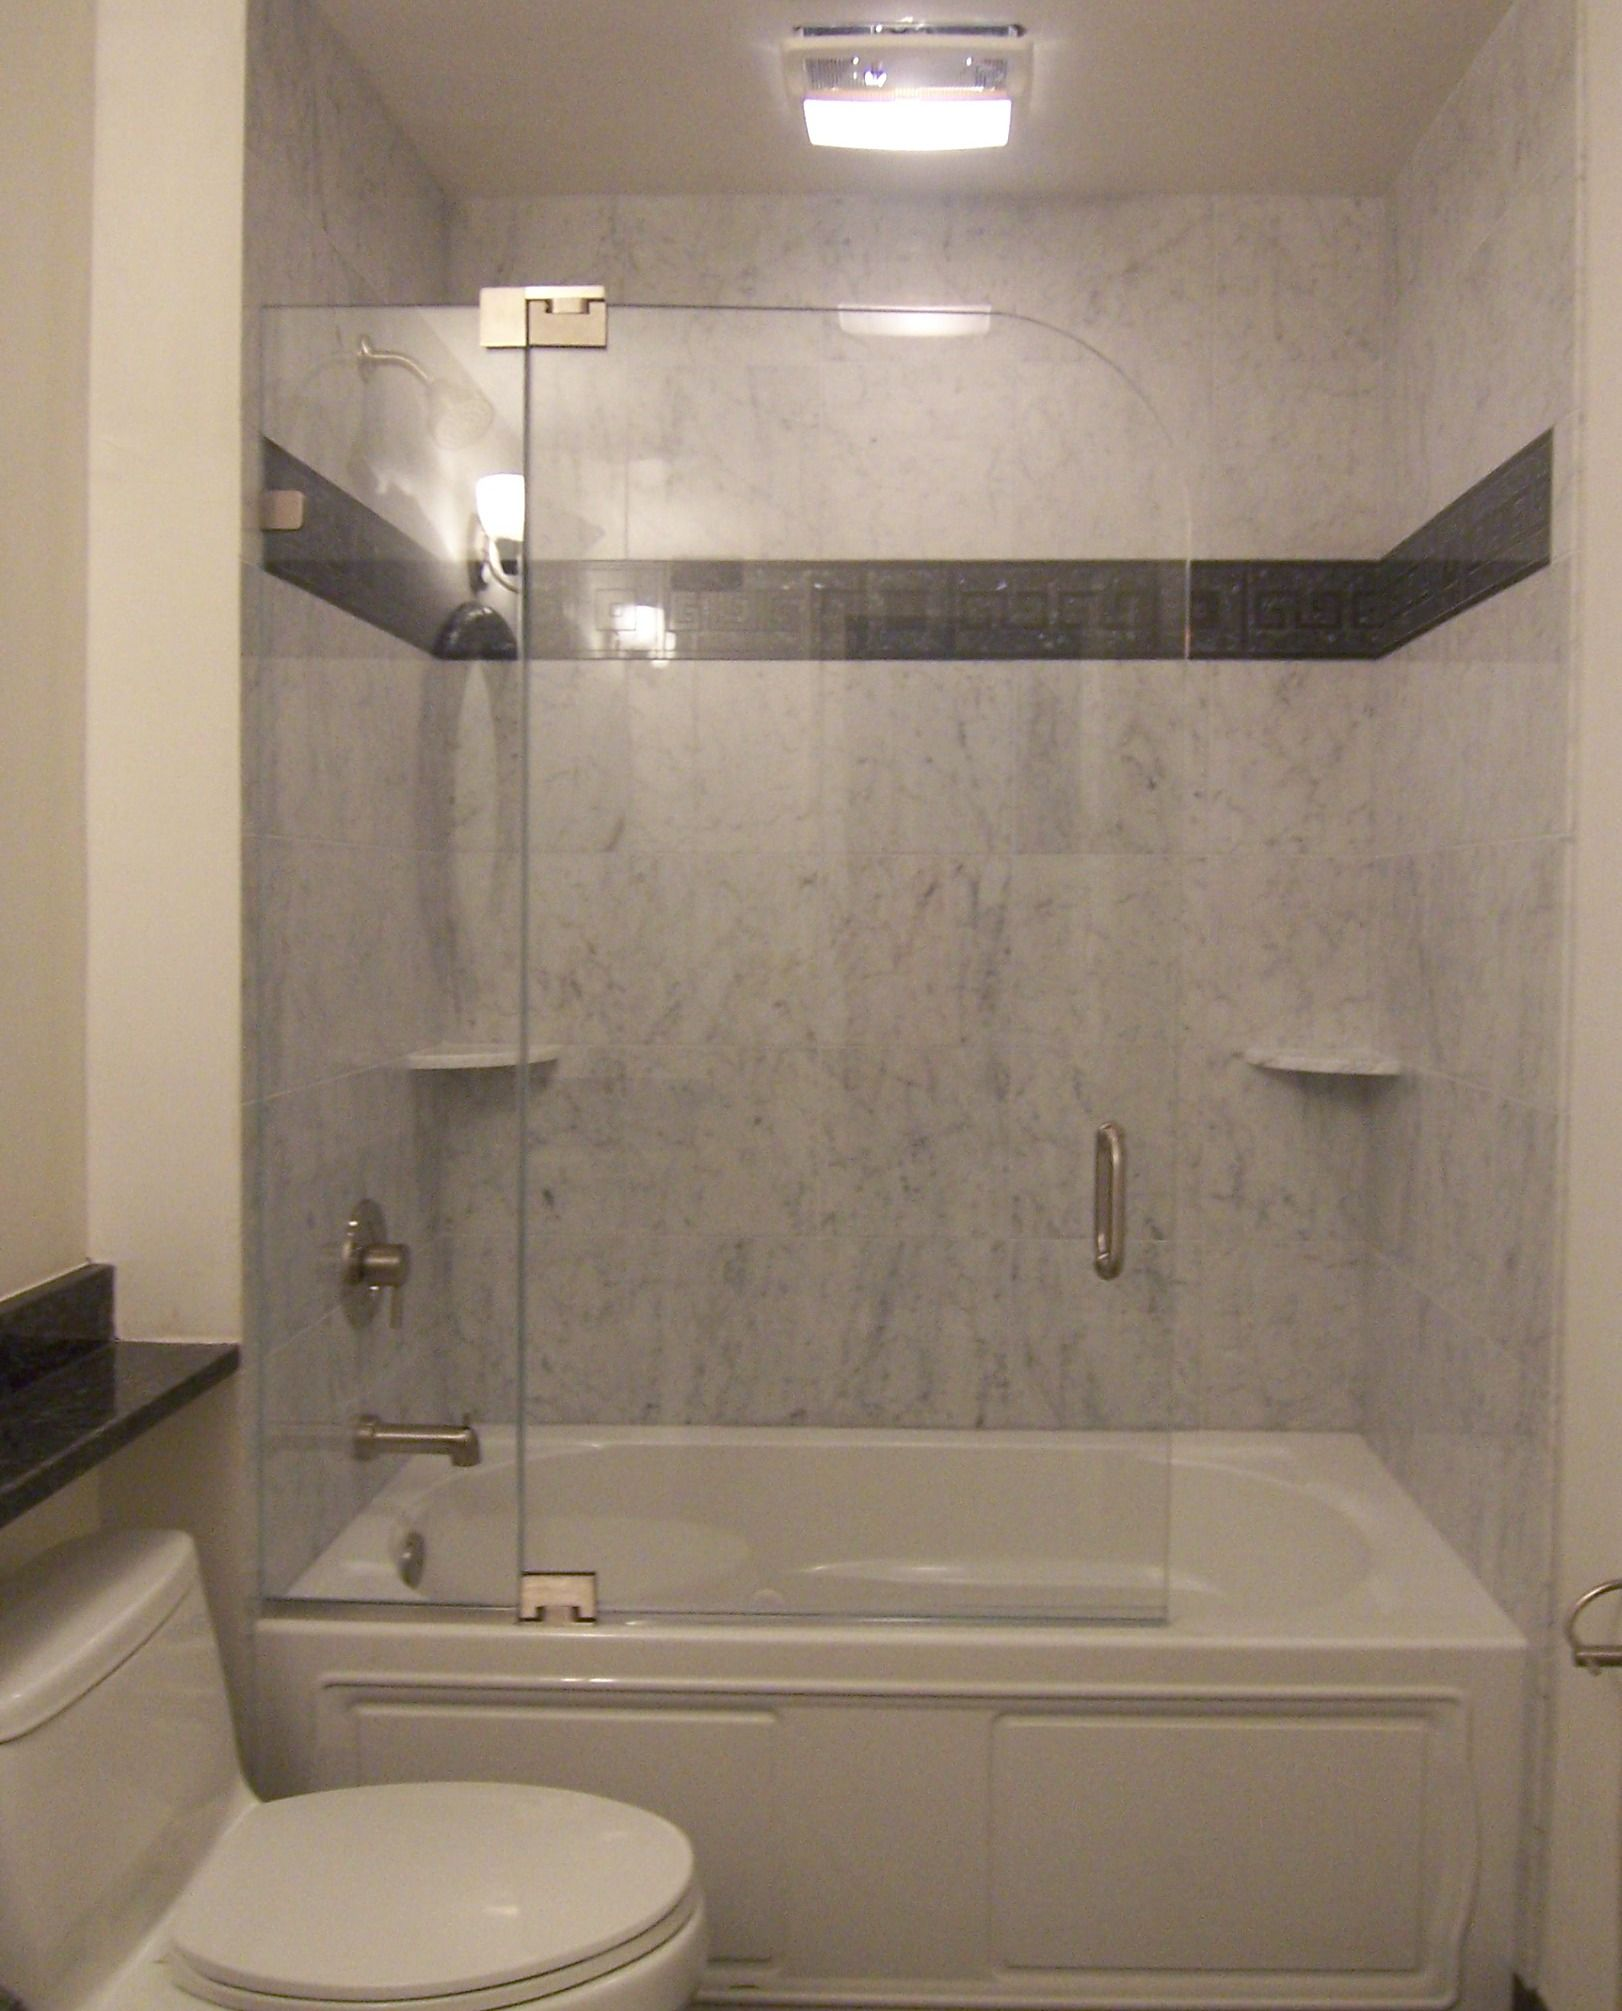 Frameless Spray Panel With Door Frameless Shower Doors Tub Shower Doors Bathtub Doors